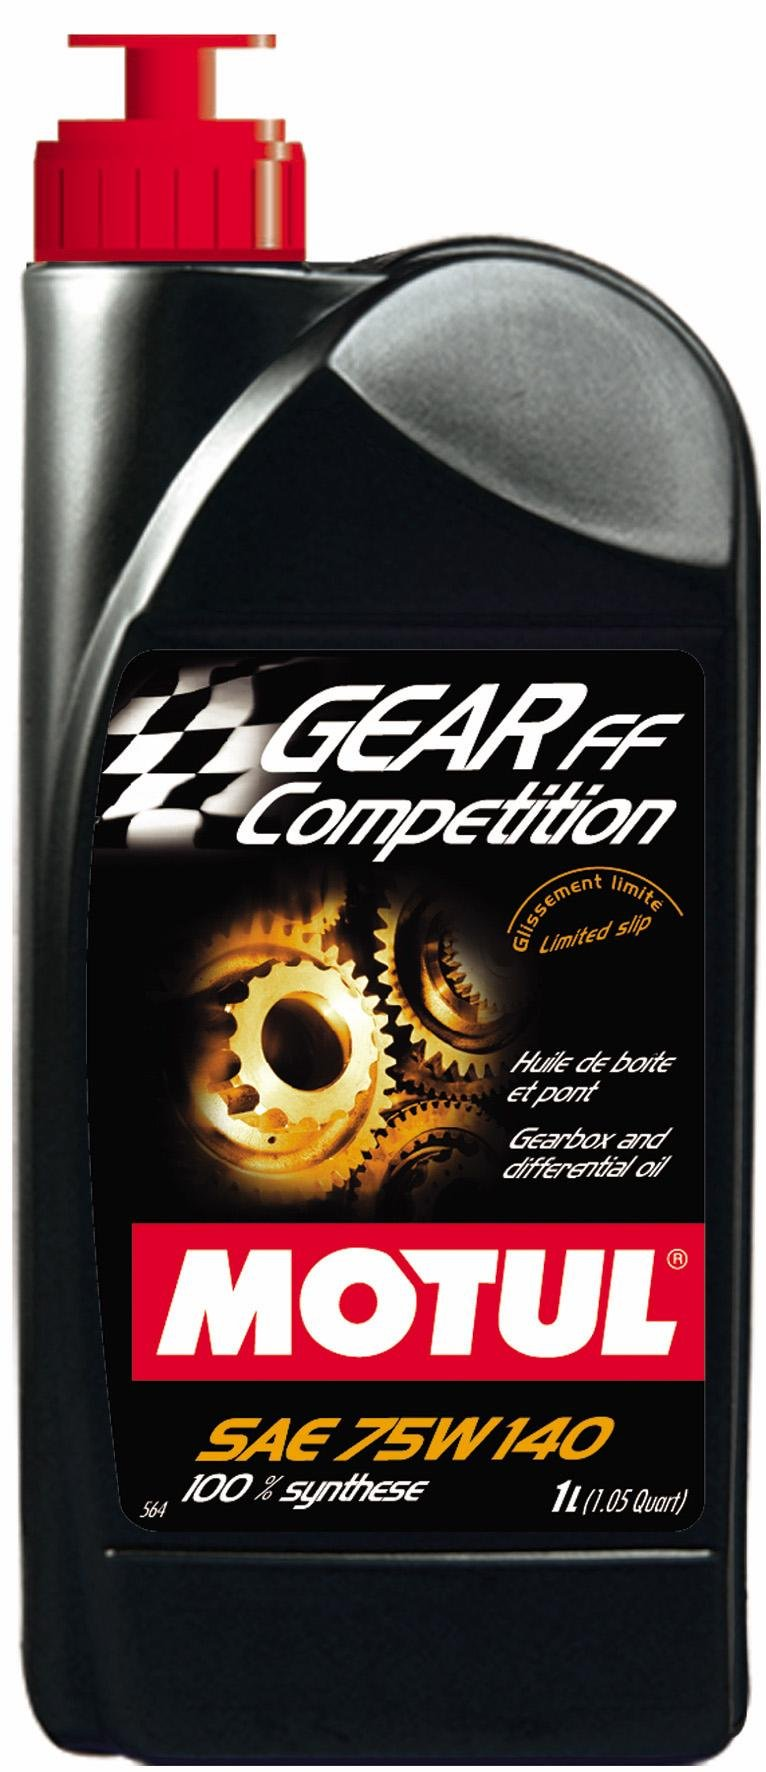 Motul Gear Competition 75W140 1L (Pack of 2)